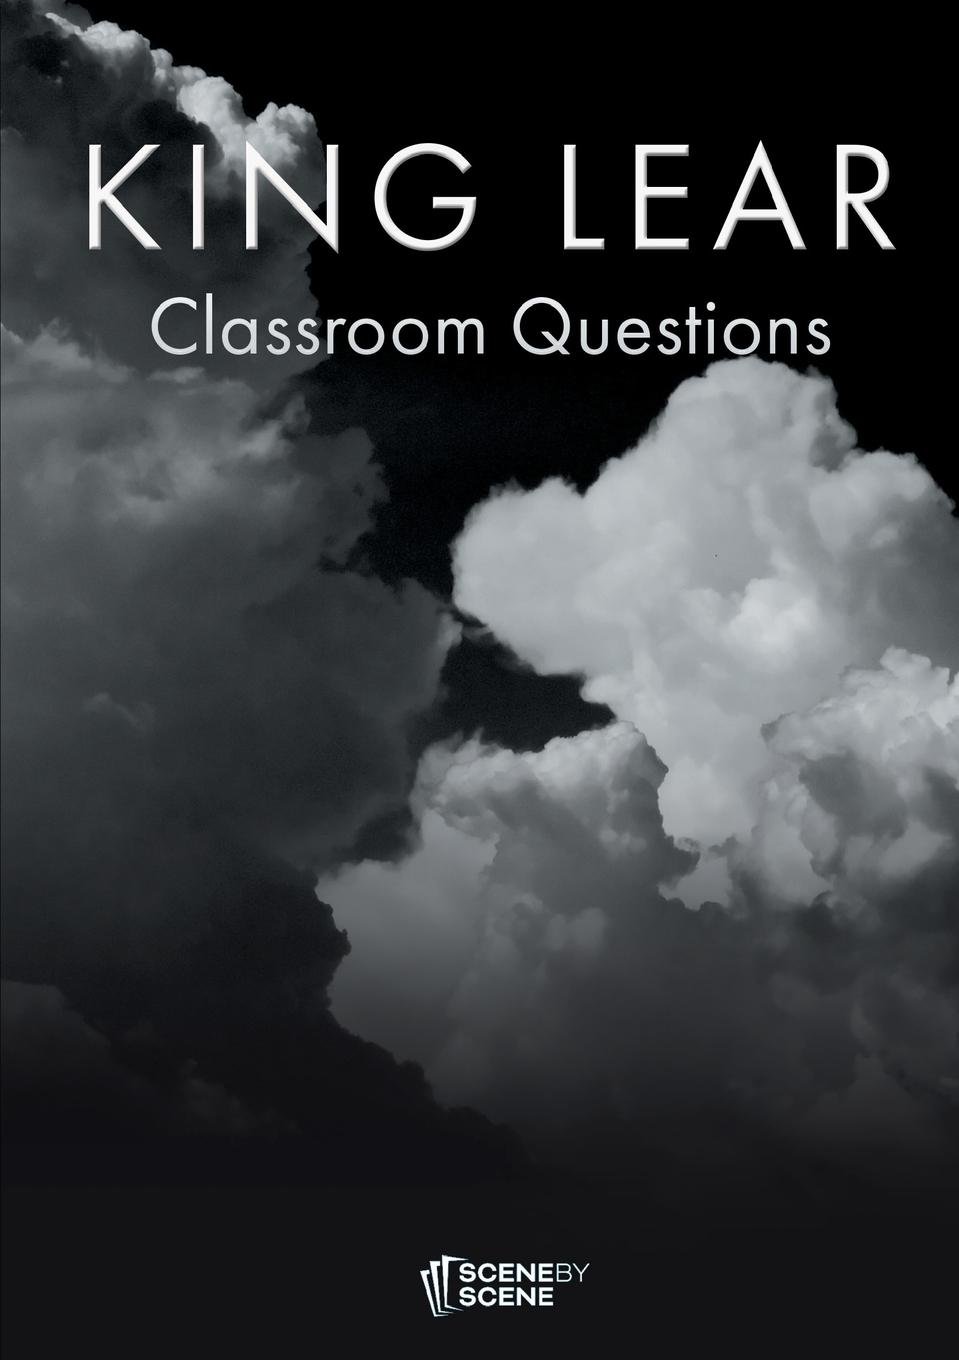 king lear a level coursework questions A level study notes and revision guides king lear: a level york notes students that attain the highest marks for their essays and answers to questions on king lear are likely to have shown the examiner that they have a detailed knowledge of lear's motivations in dividing up his kingdom, and.